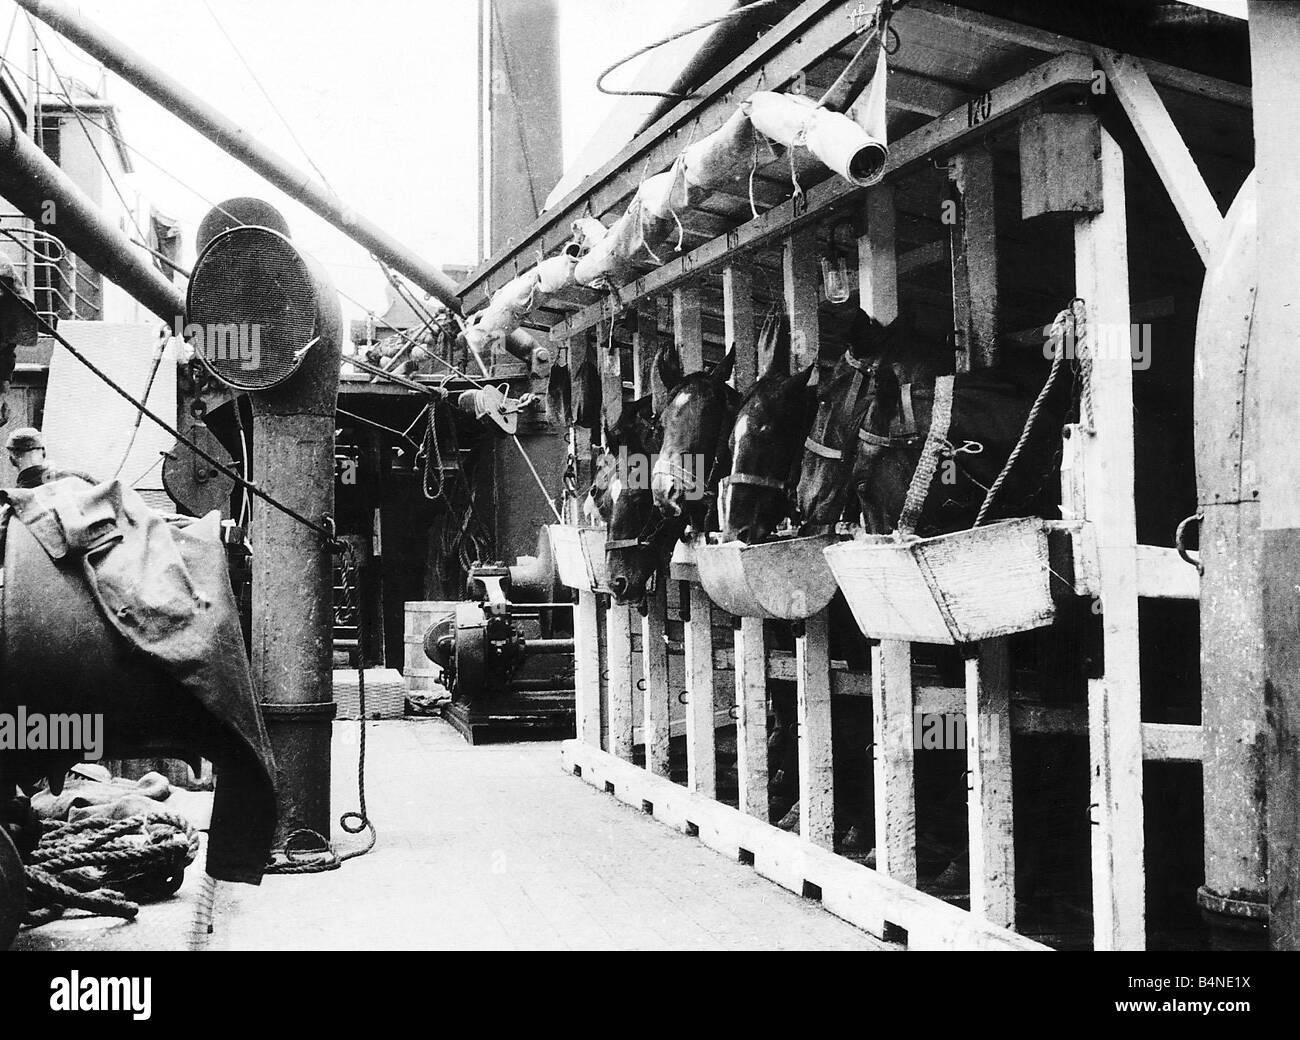 British cavalry horses onboard a transport ship 1915 sailing to France during World War One - Stock Image